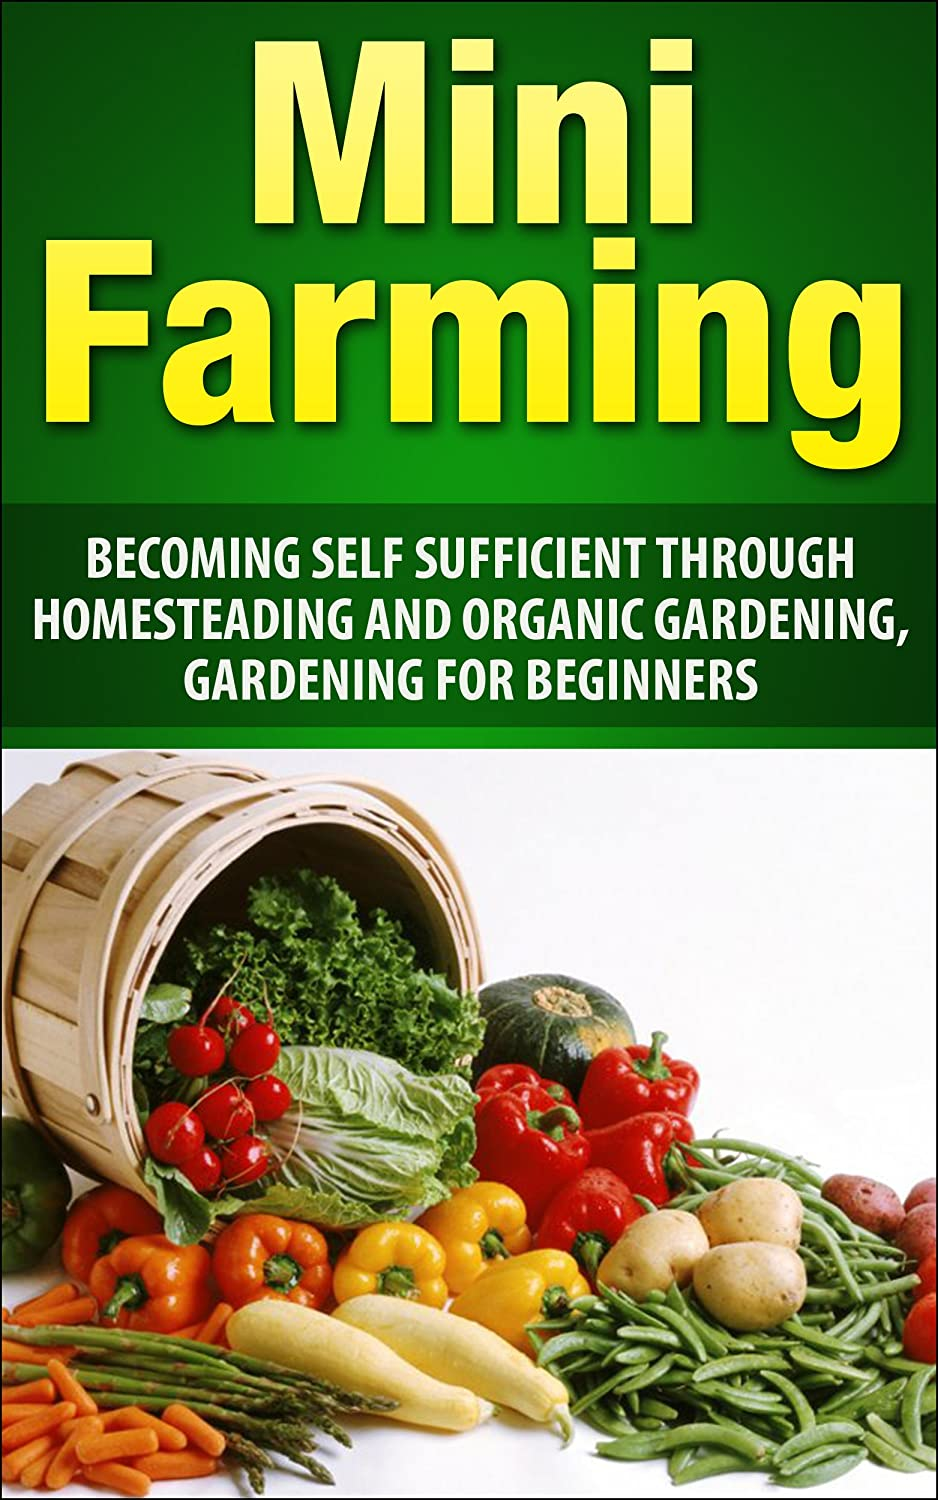 http://www.amazon.com/Mini-Farming-Sufficient-Homesteading-Gardening-ebook/dp/B00L06N7VC/ref=as_sl_pc_ss_til?tag=lettfromahome-20&linkCode=w01&linkId=GKIV75H7ZPB64JDW&creativeASIN=B00L06N7VC